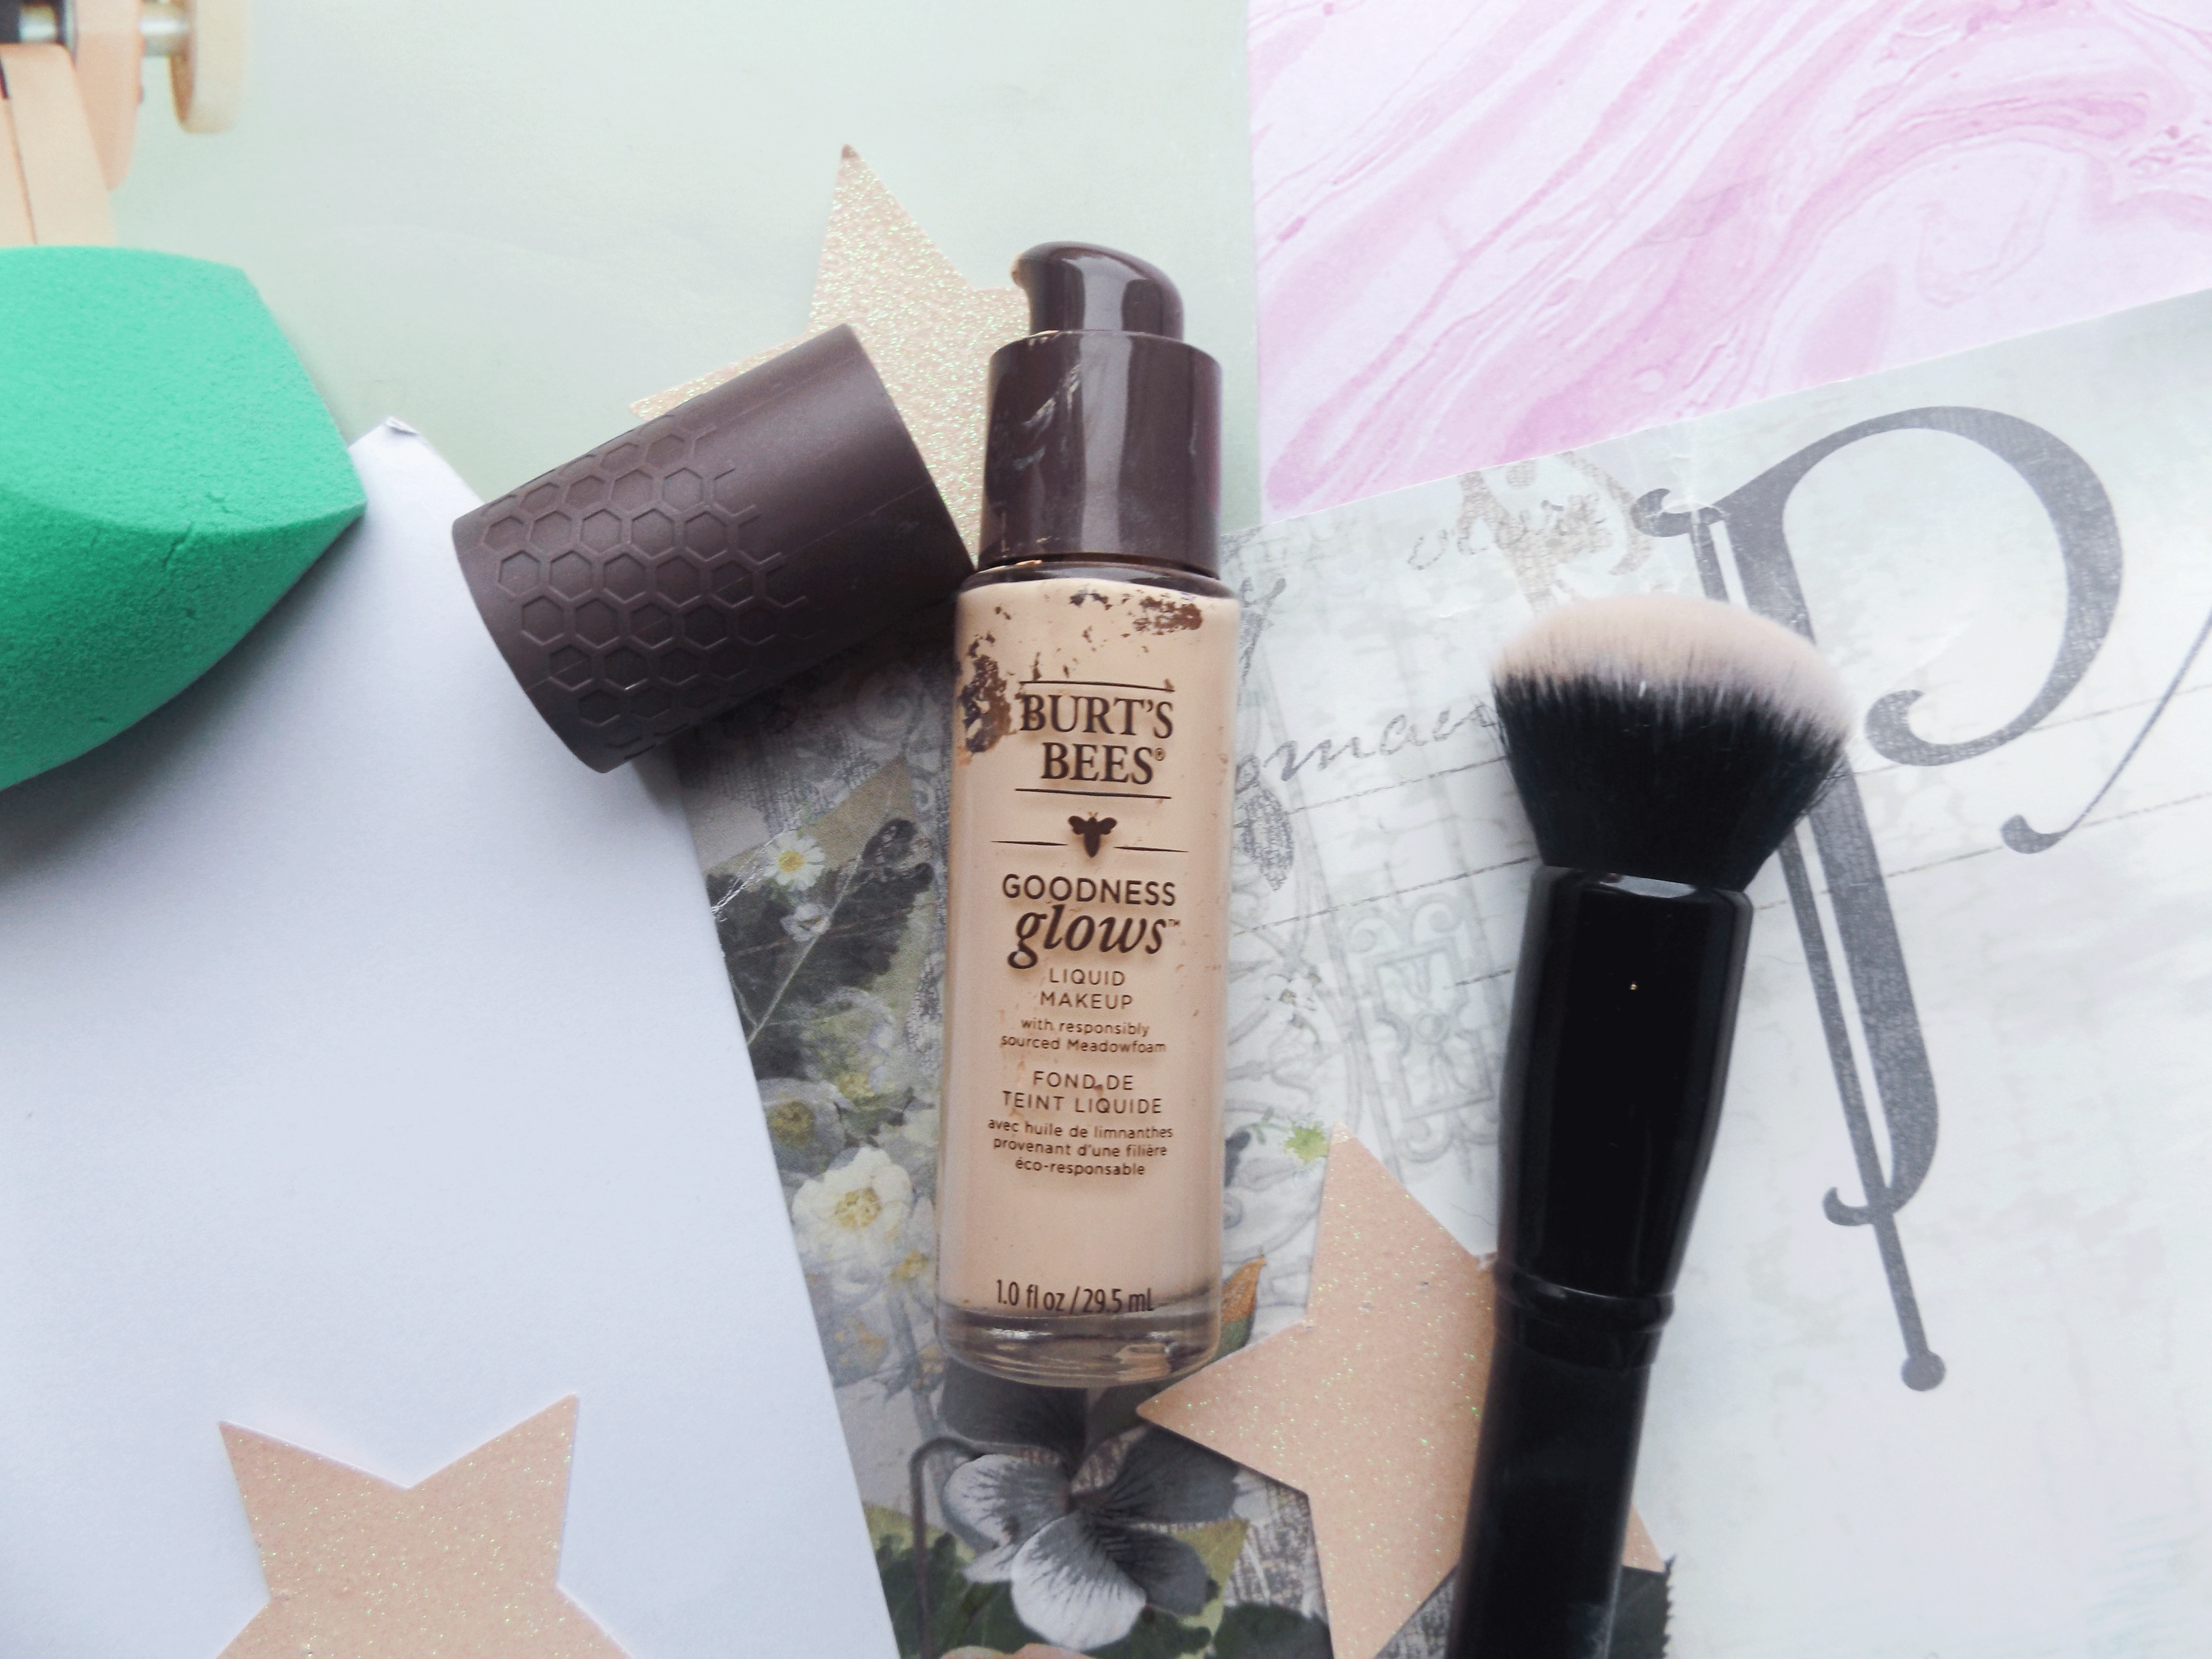 Burts Bees Foundation open and elf brush